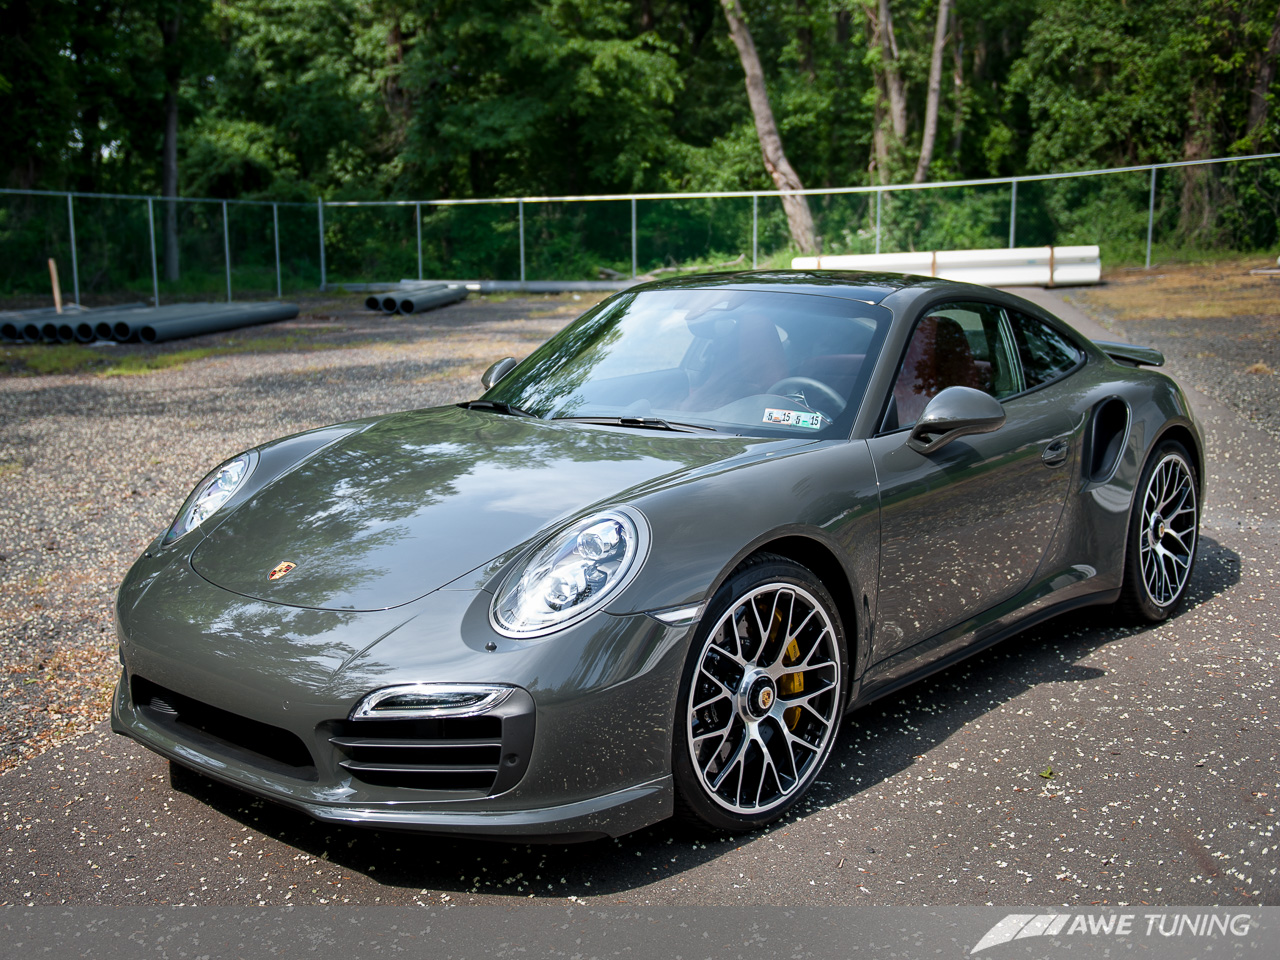 A Special Shade Of Gray Meet The New Awe Tuning Porsche